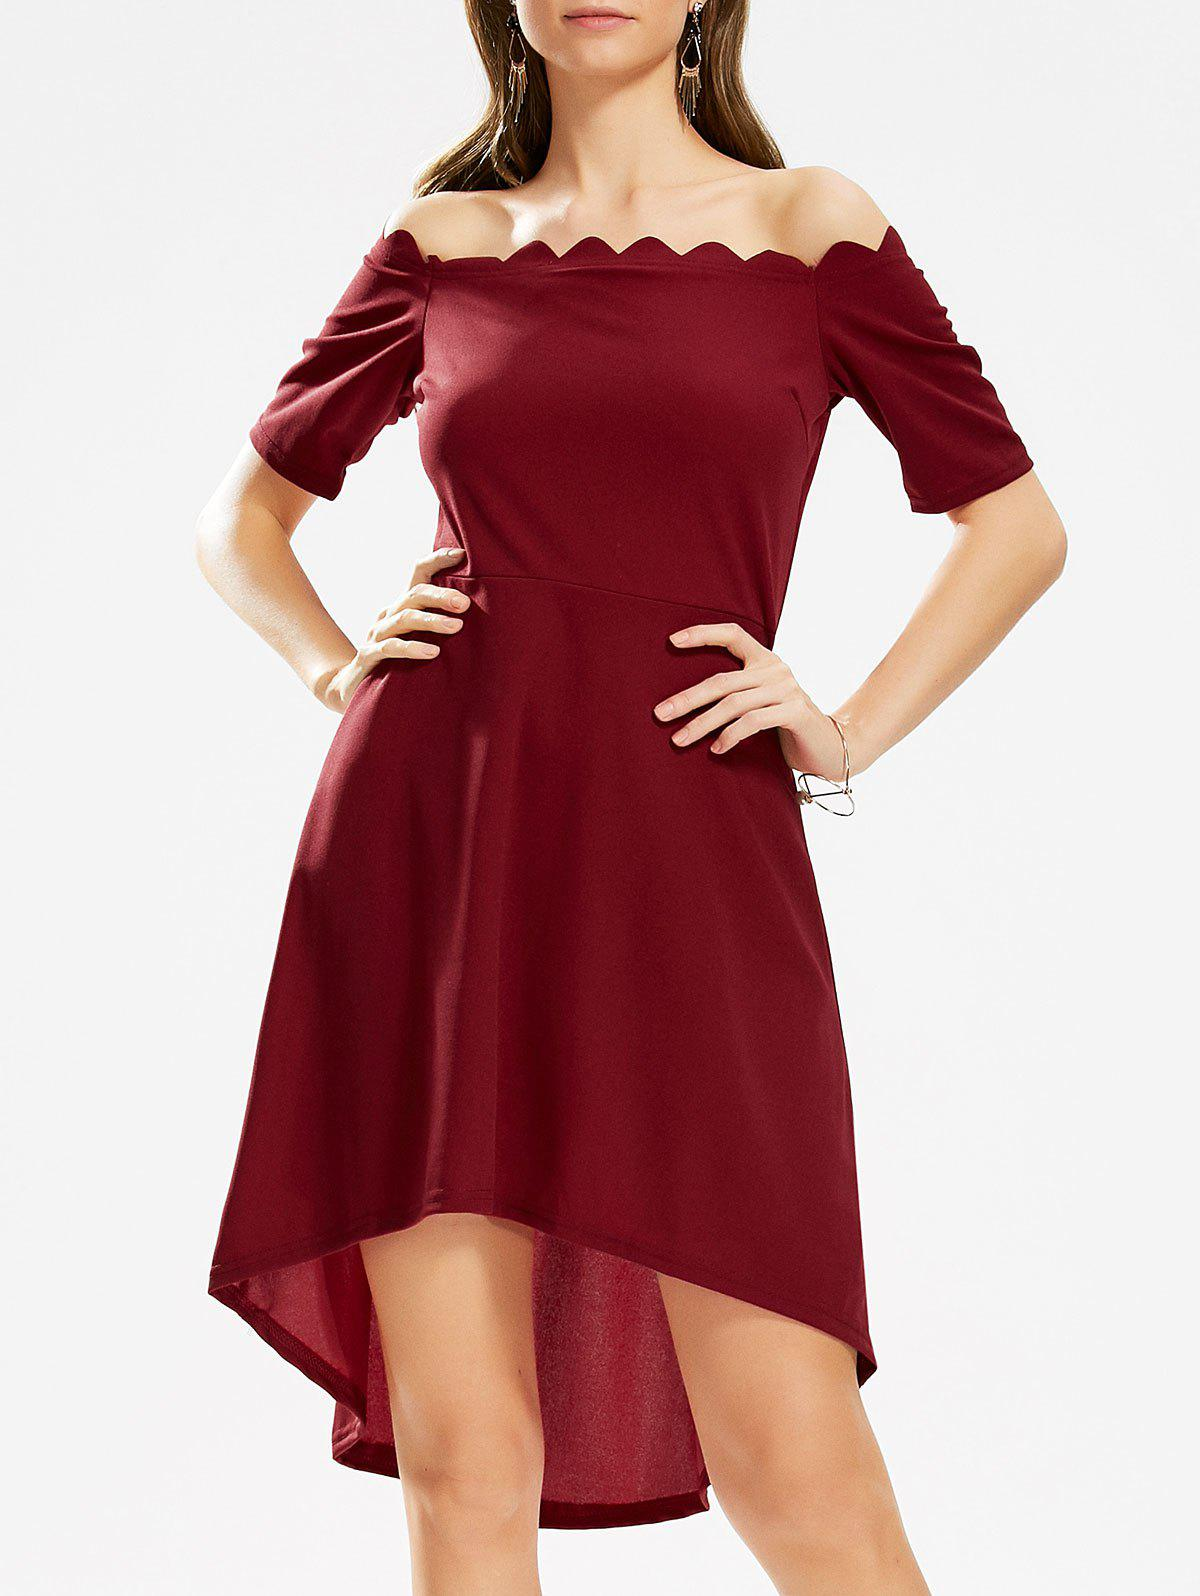 Off The Shoulder High Low Scalloped Dress - Rouge vineux M